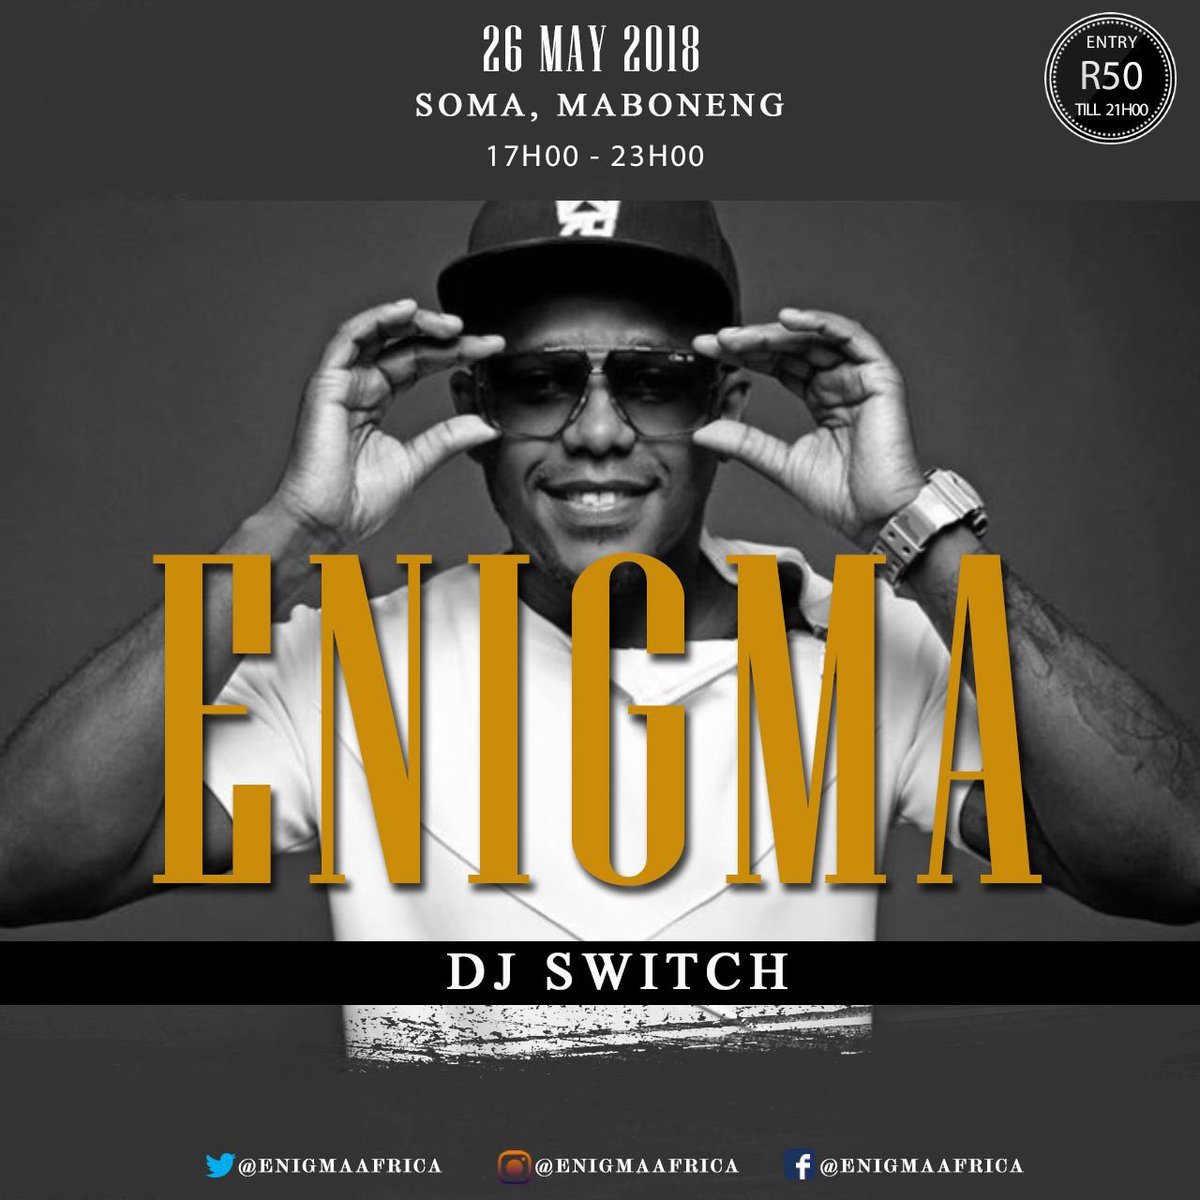 Catch .@DjSwitchSA live at .@ENIGMAAFRICA this Saturday at .@somaartspace in Maboneng   #HipHop #DJ #Party #ENIGMA<br>http://pic.twitter.com/FeW23qXuWq